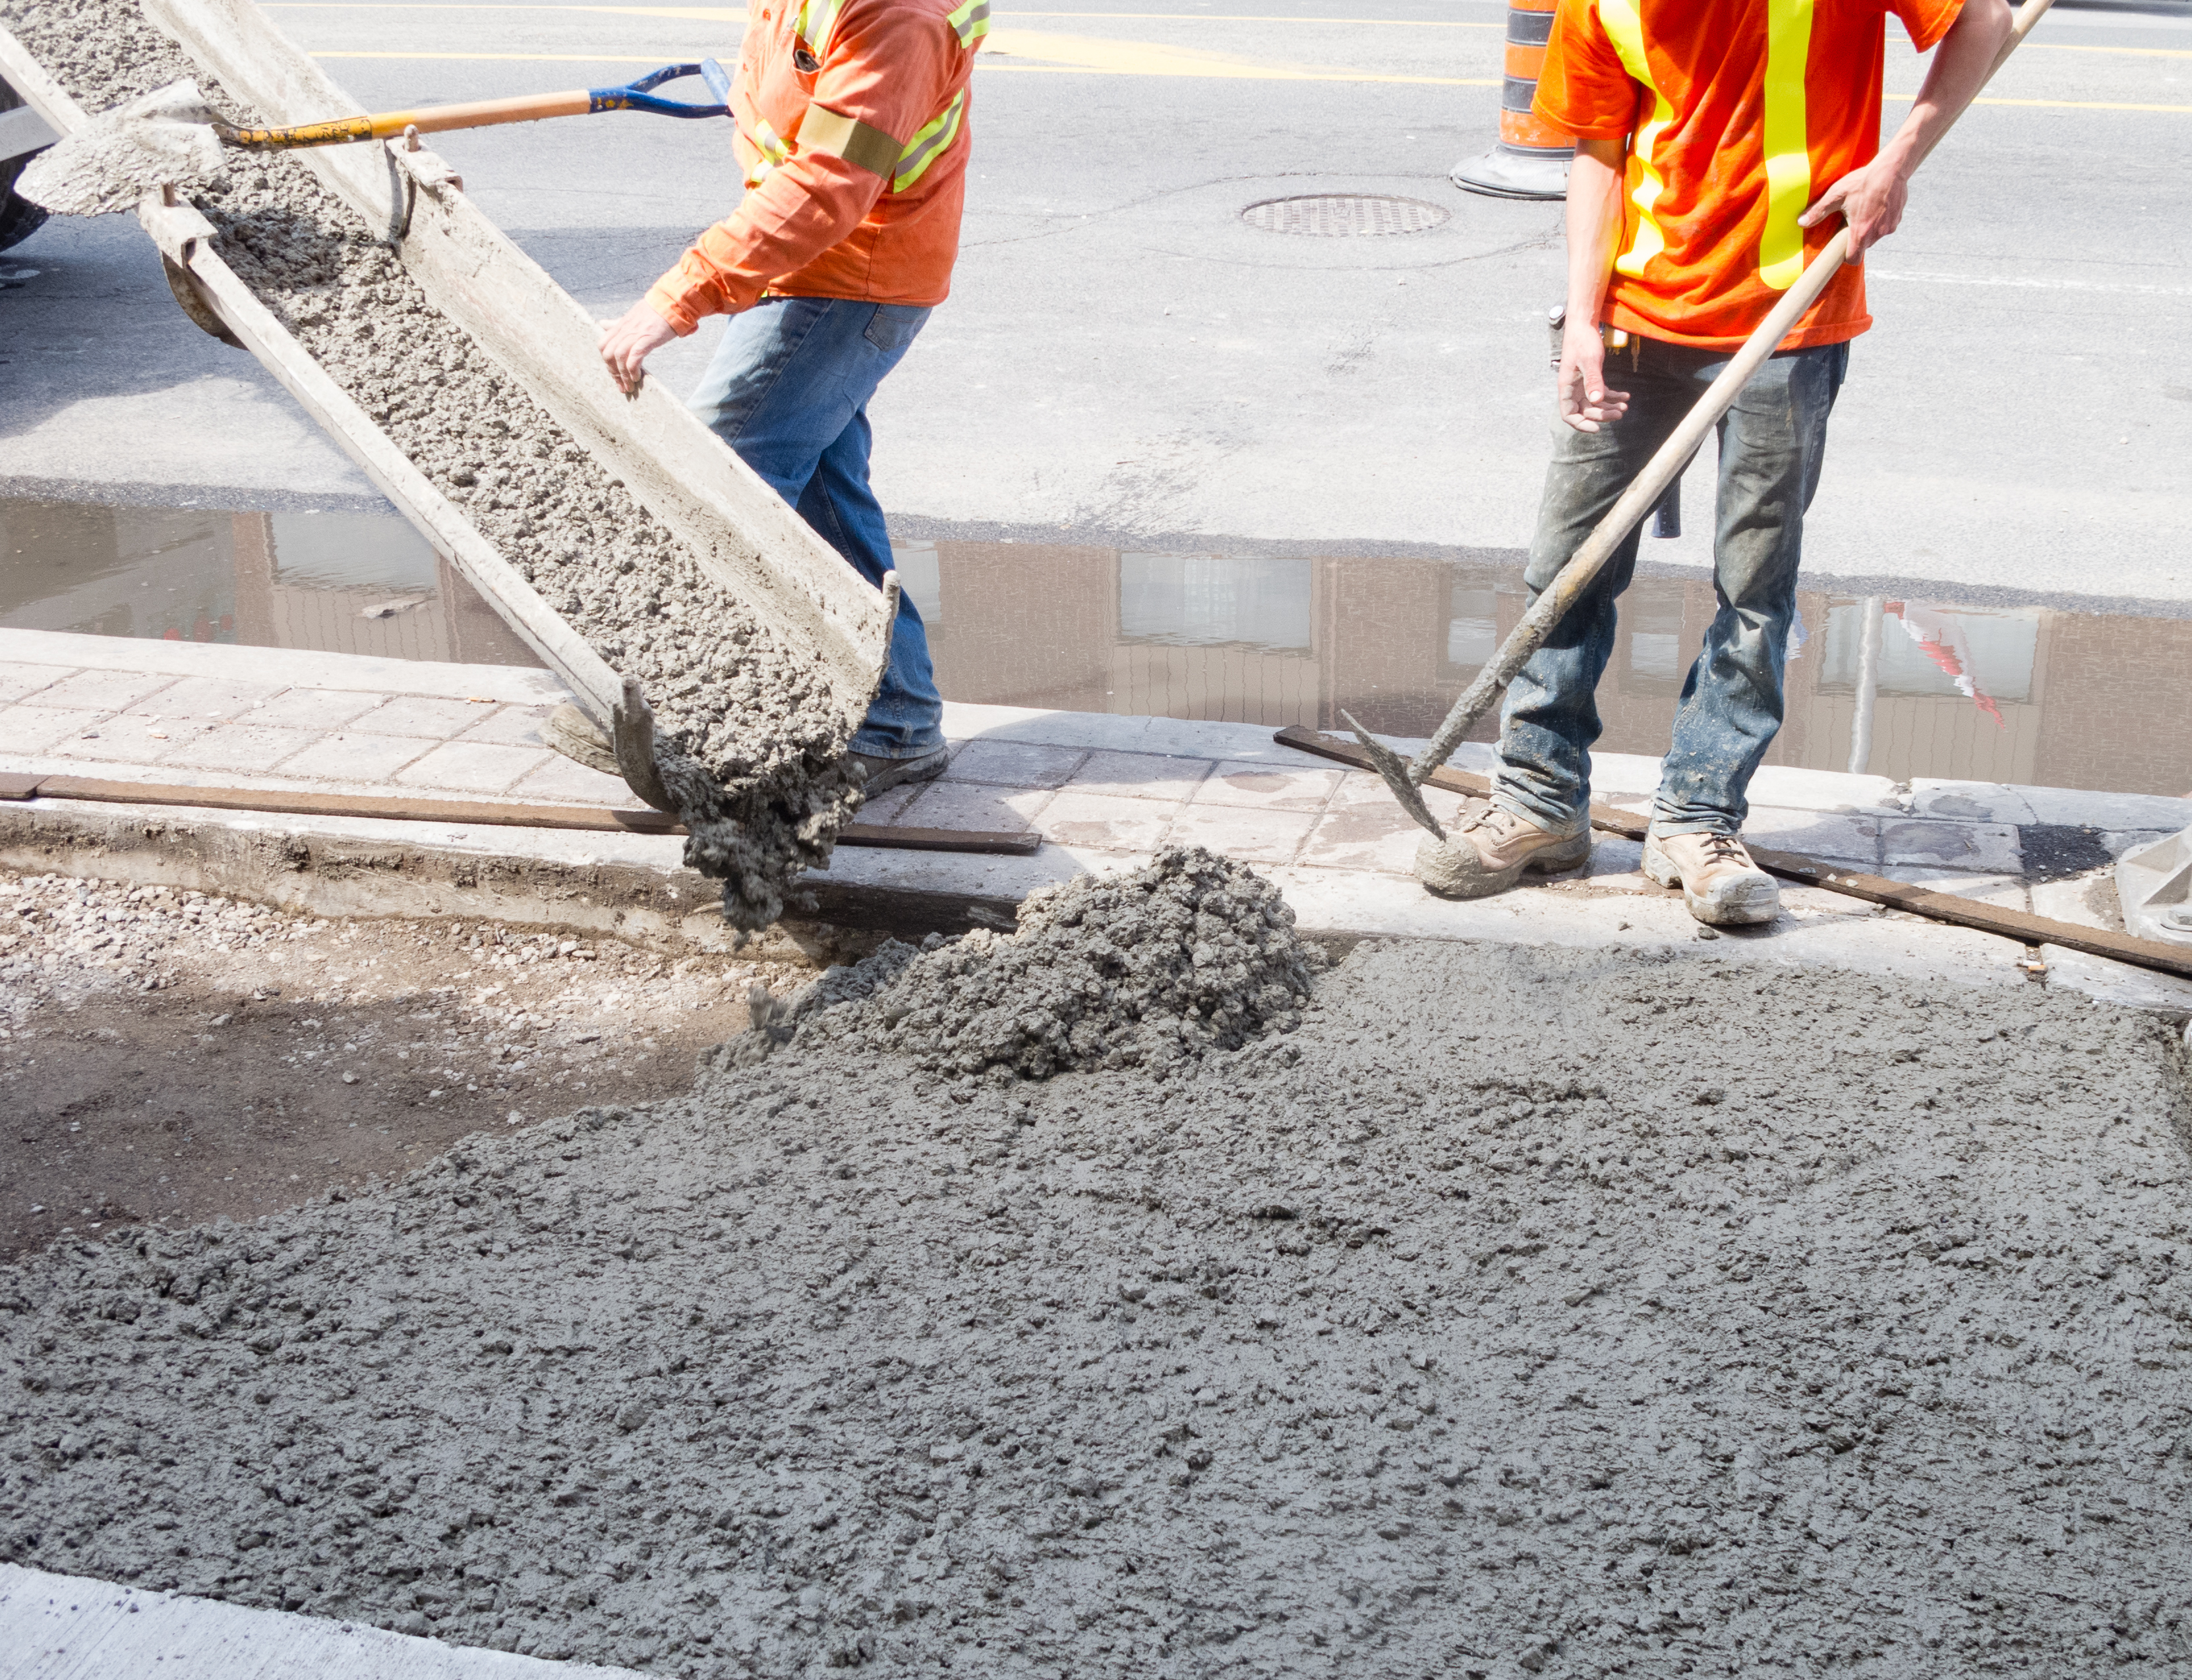 How can we reduce concrete's hefty carbon footprint?